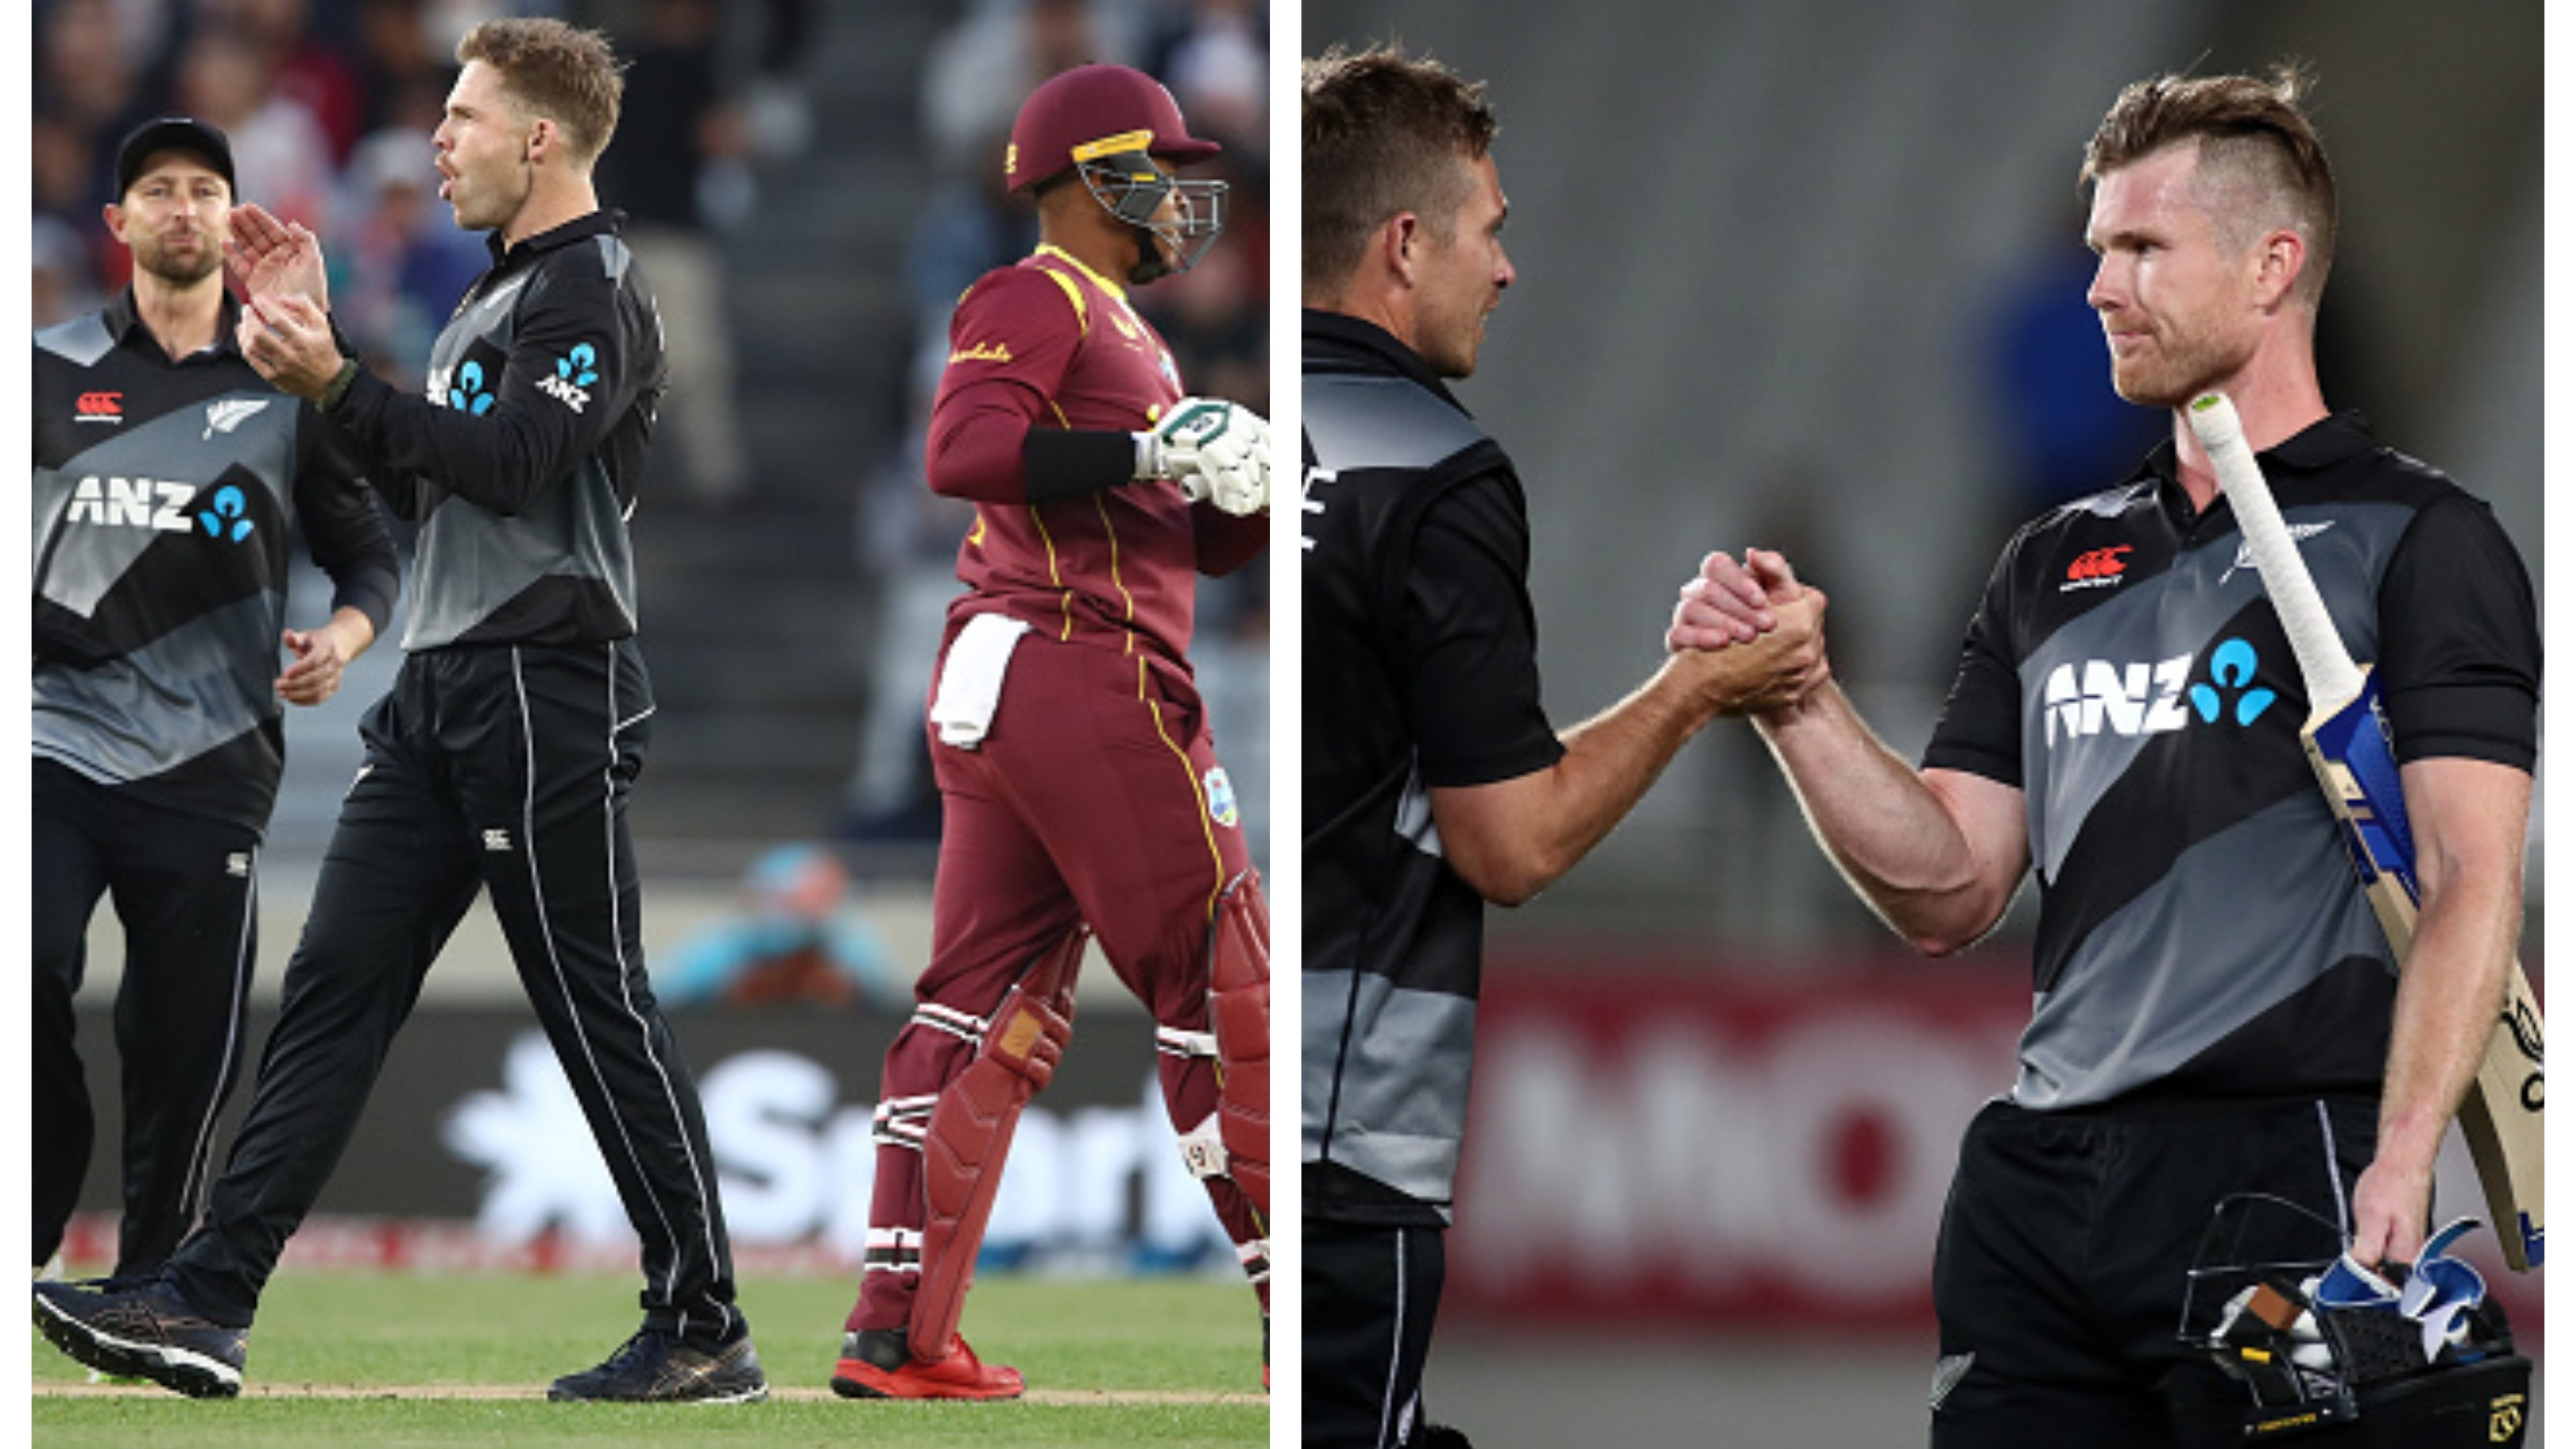 NZ v WI 2020: Lockie Ferguson, Mitchell Santner star in New Zealand's 5-wicket win over West Indies in 1st T20I